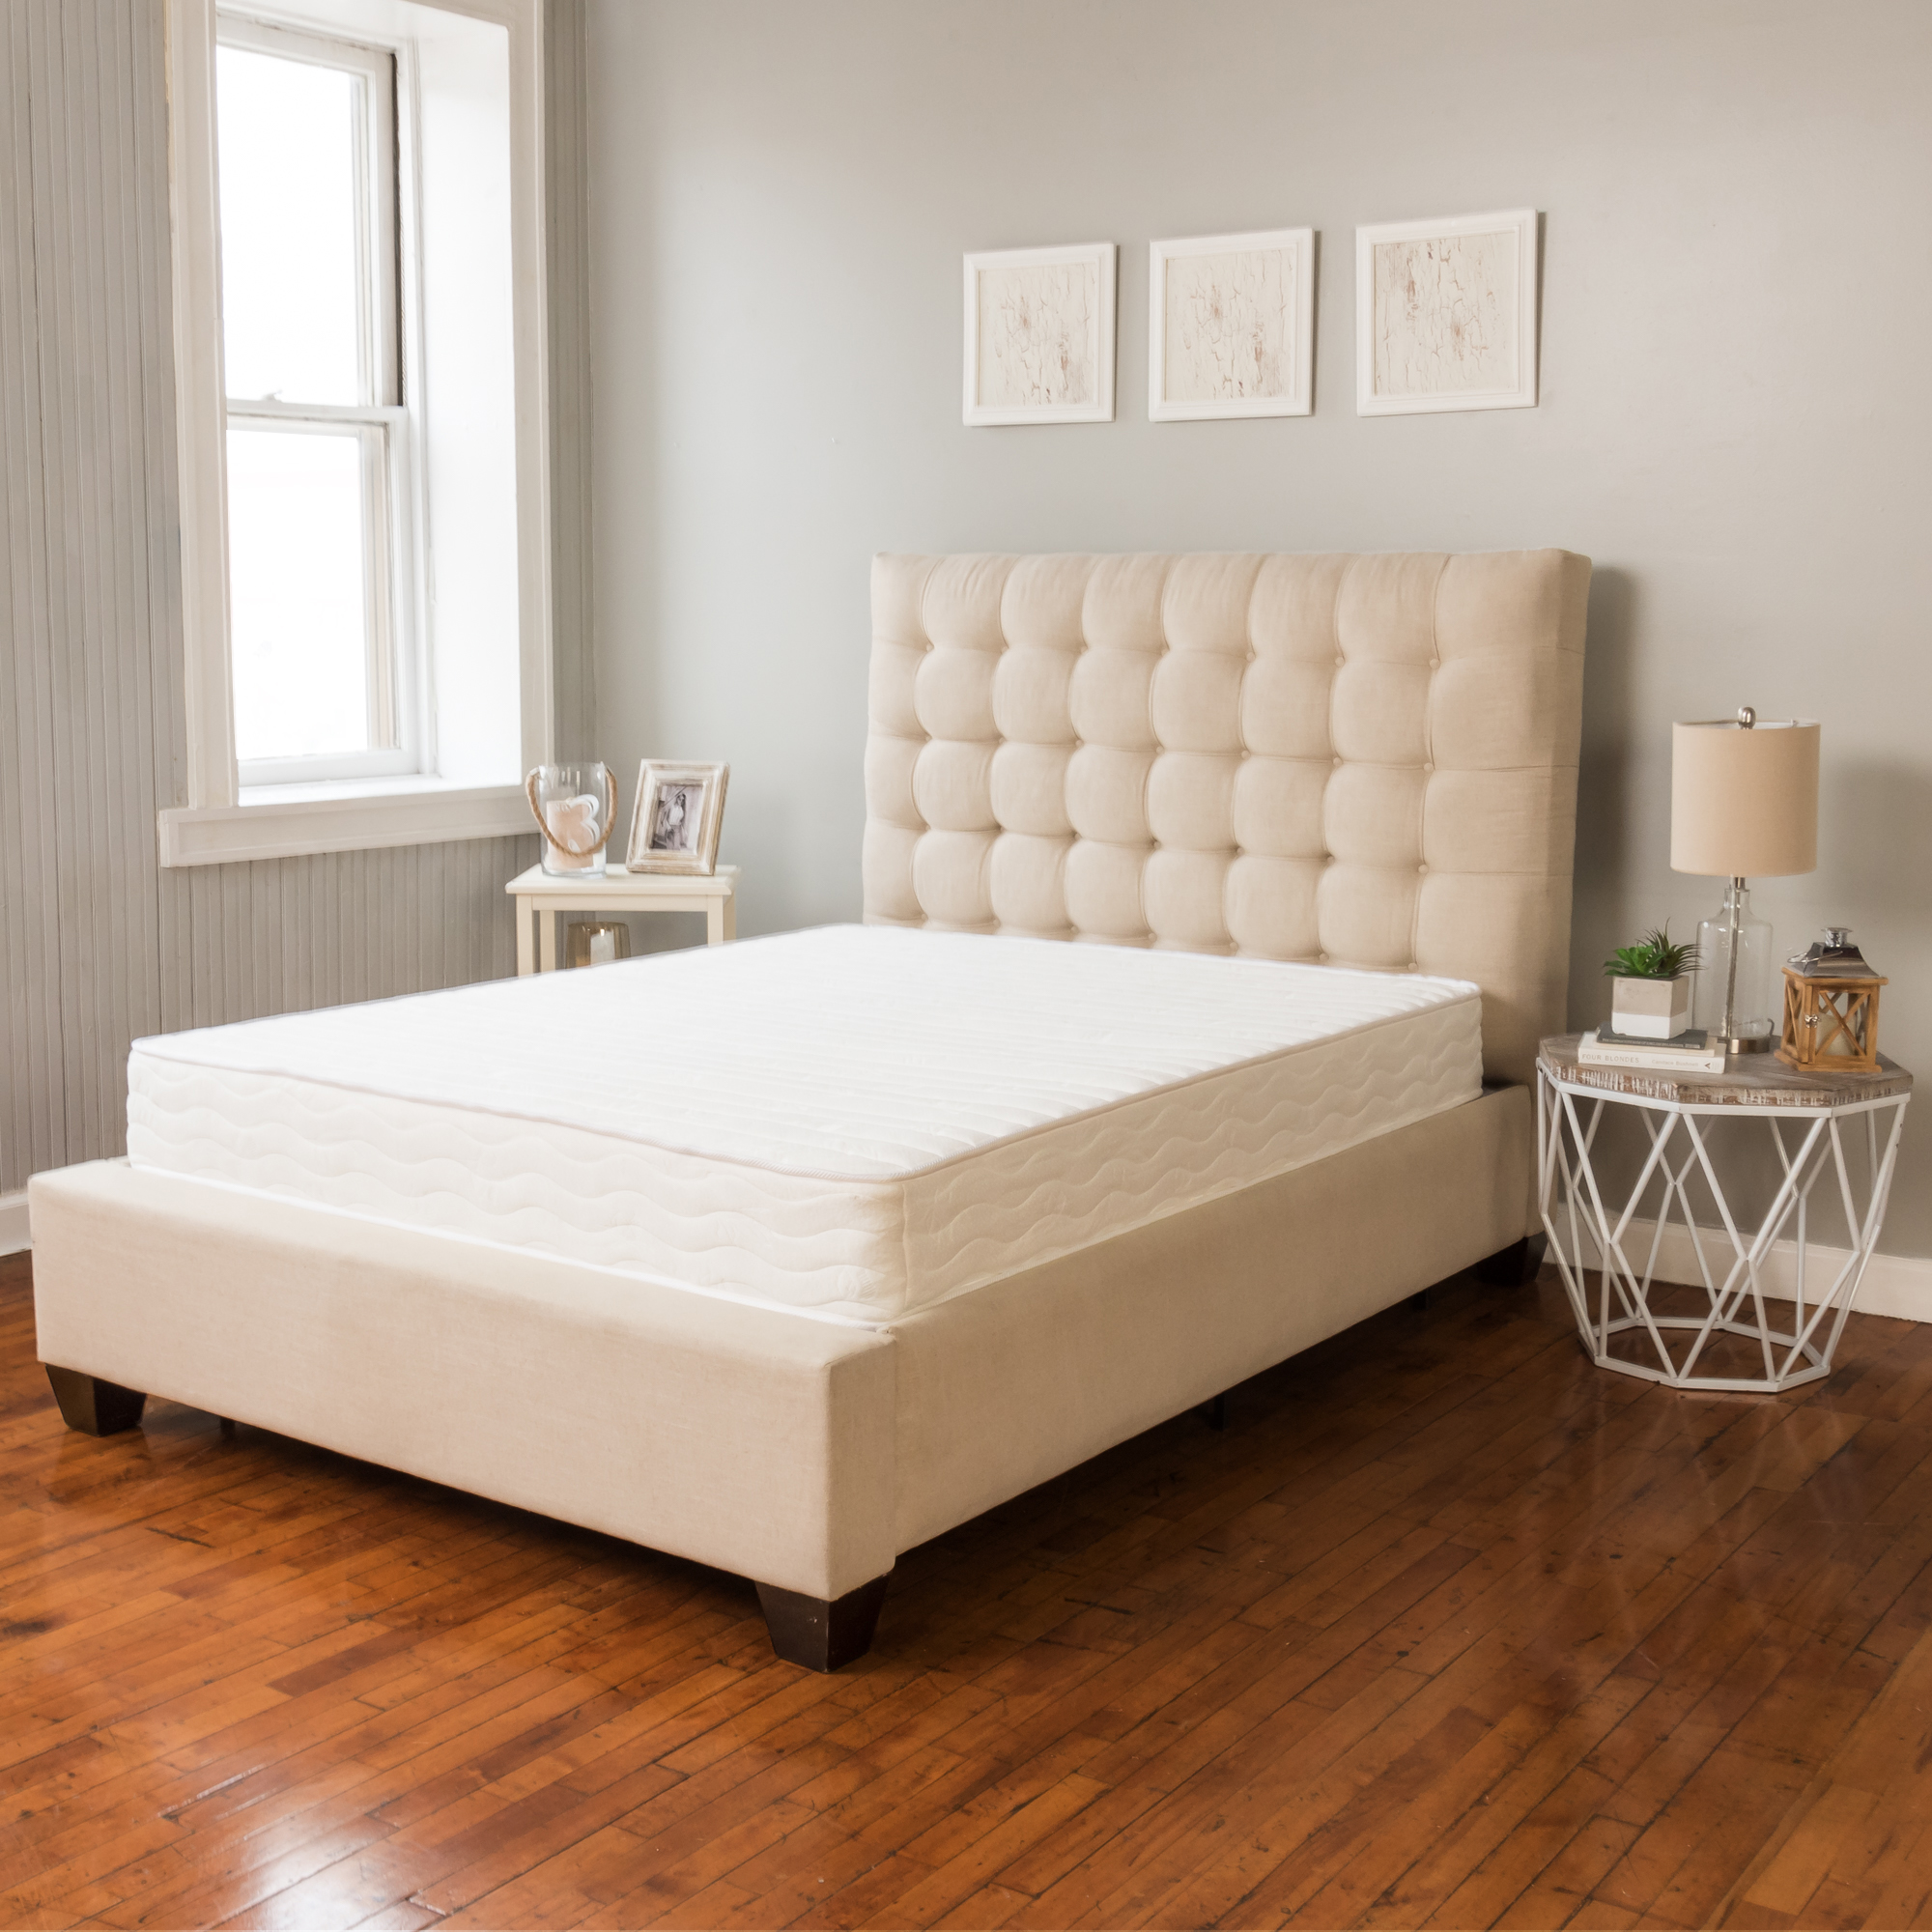 Modern Sleep Advantage Innerspring 8-Inch Mattress, Multiple Sizes by Classic Brands